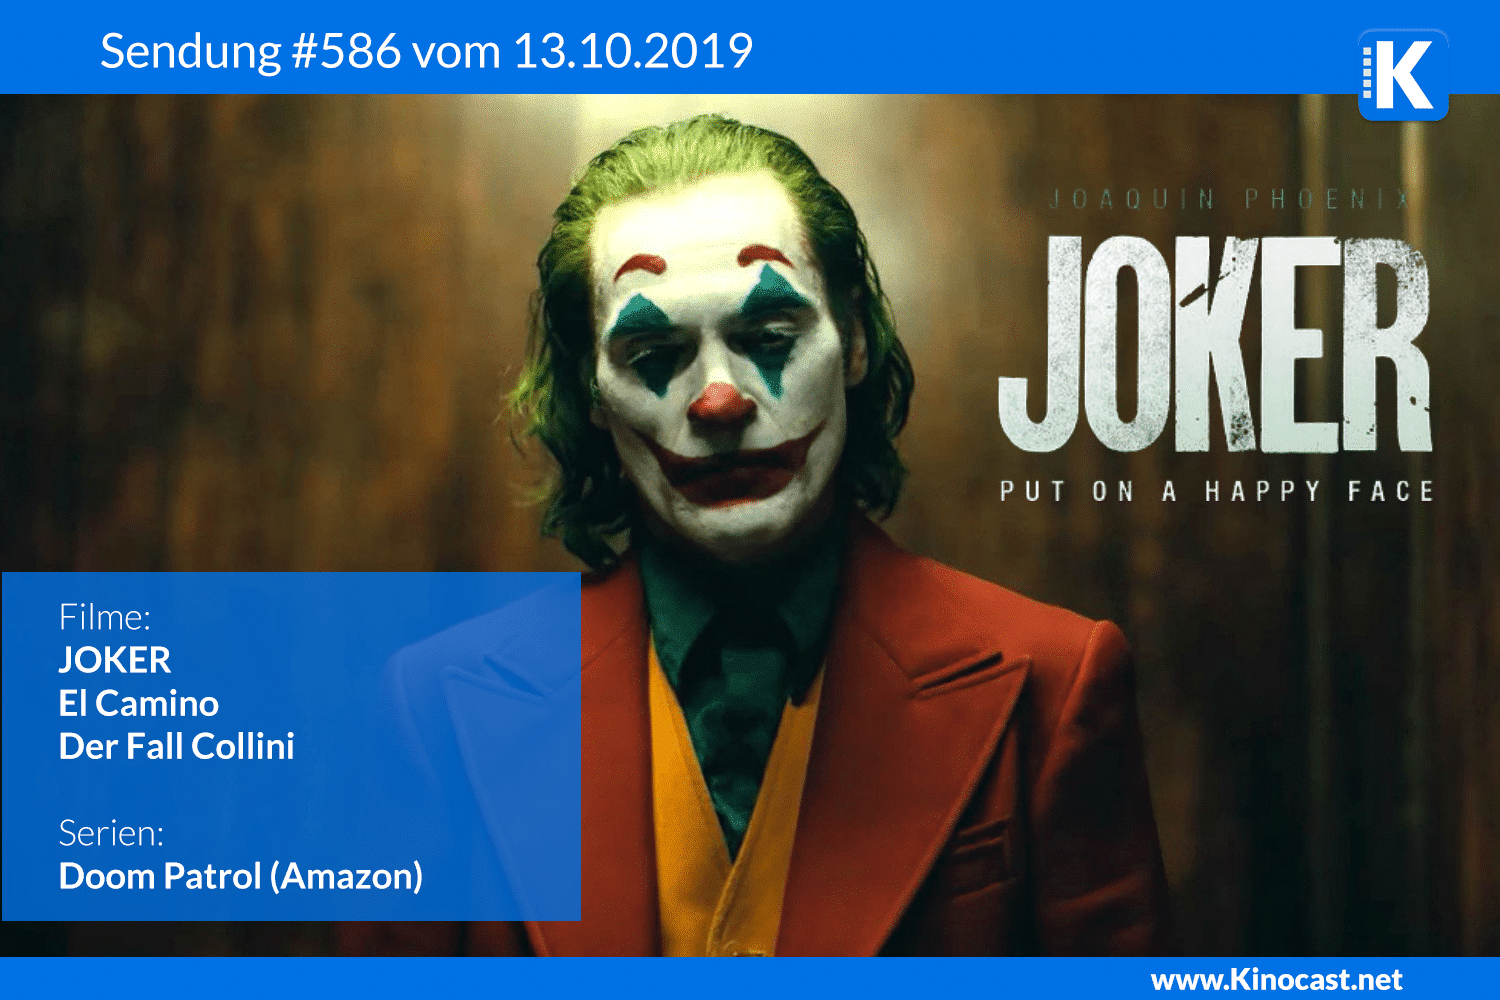 JOKER El Camino netflix Der Fall Collini Doom Patrol amazon Preview Download film german deutsch